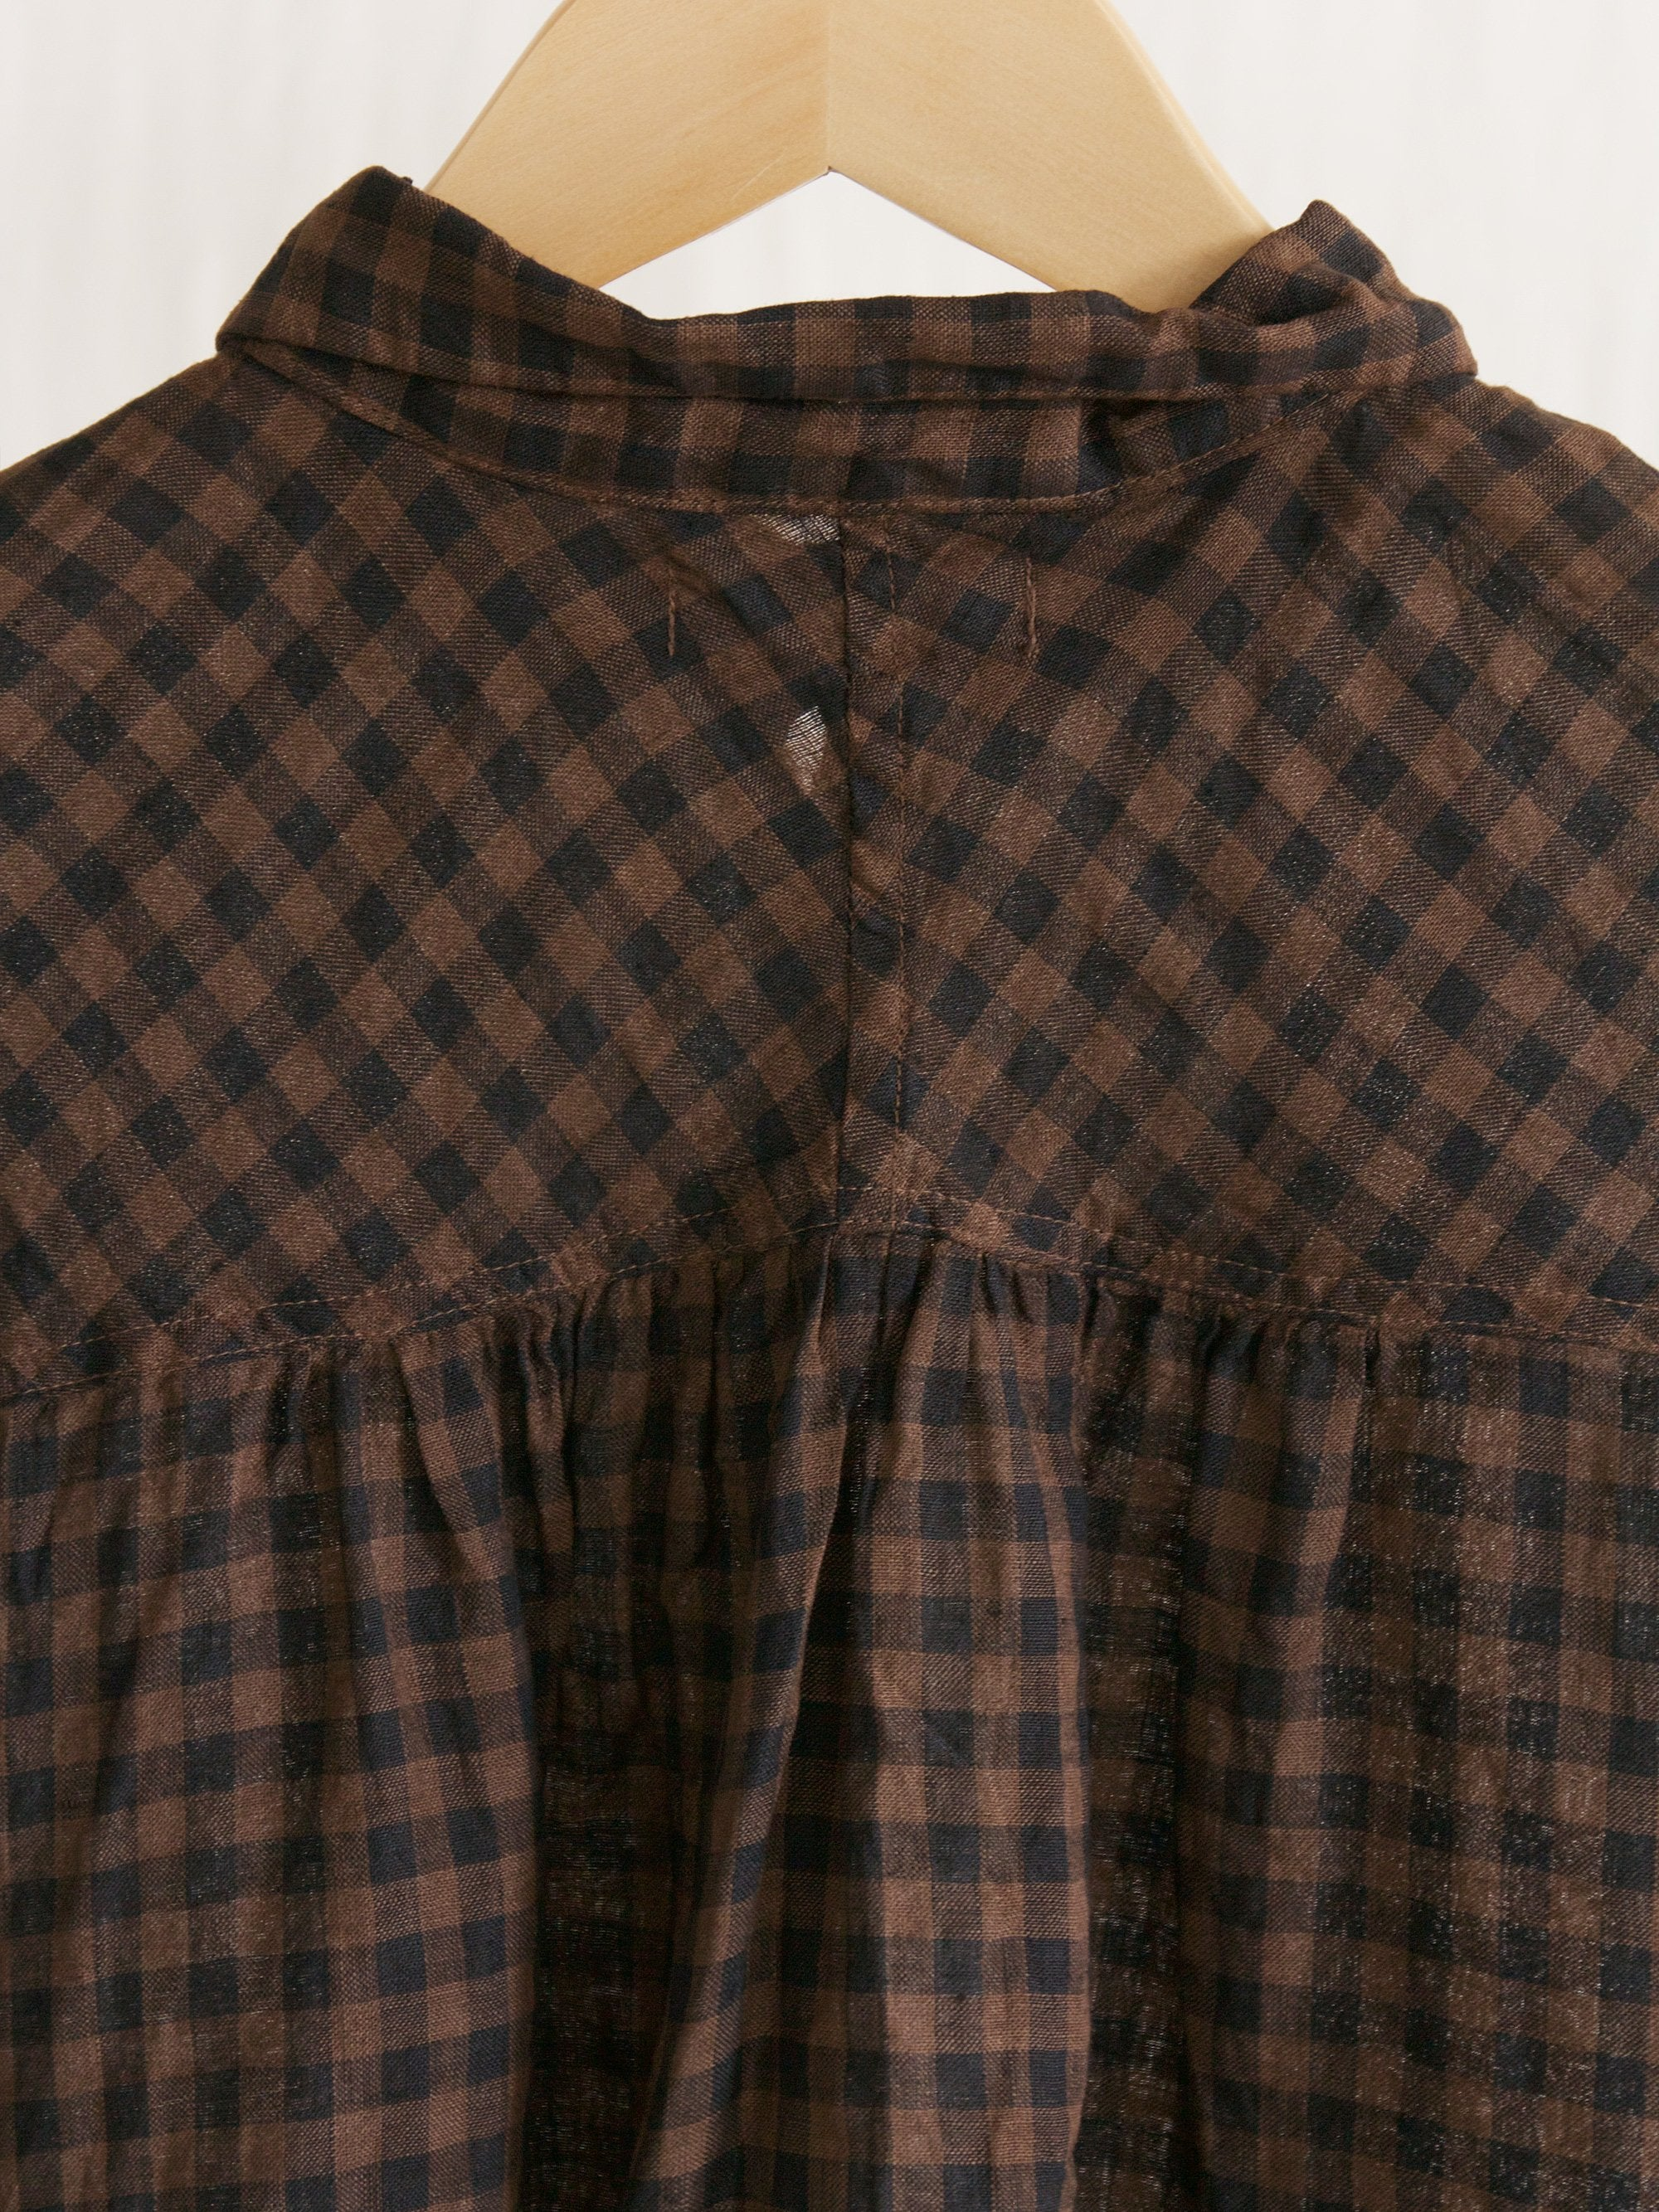 Namu Shop - Ichi Antiquites Linen Gingham Mud Handdyed Gather Shirt